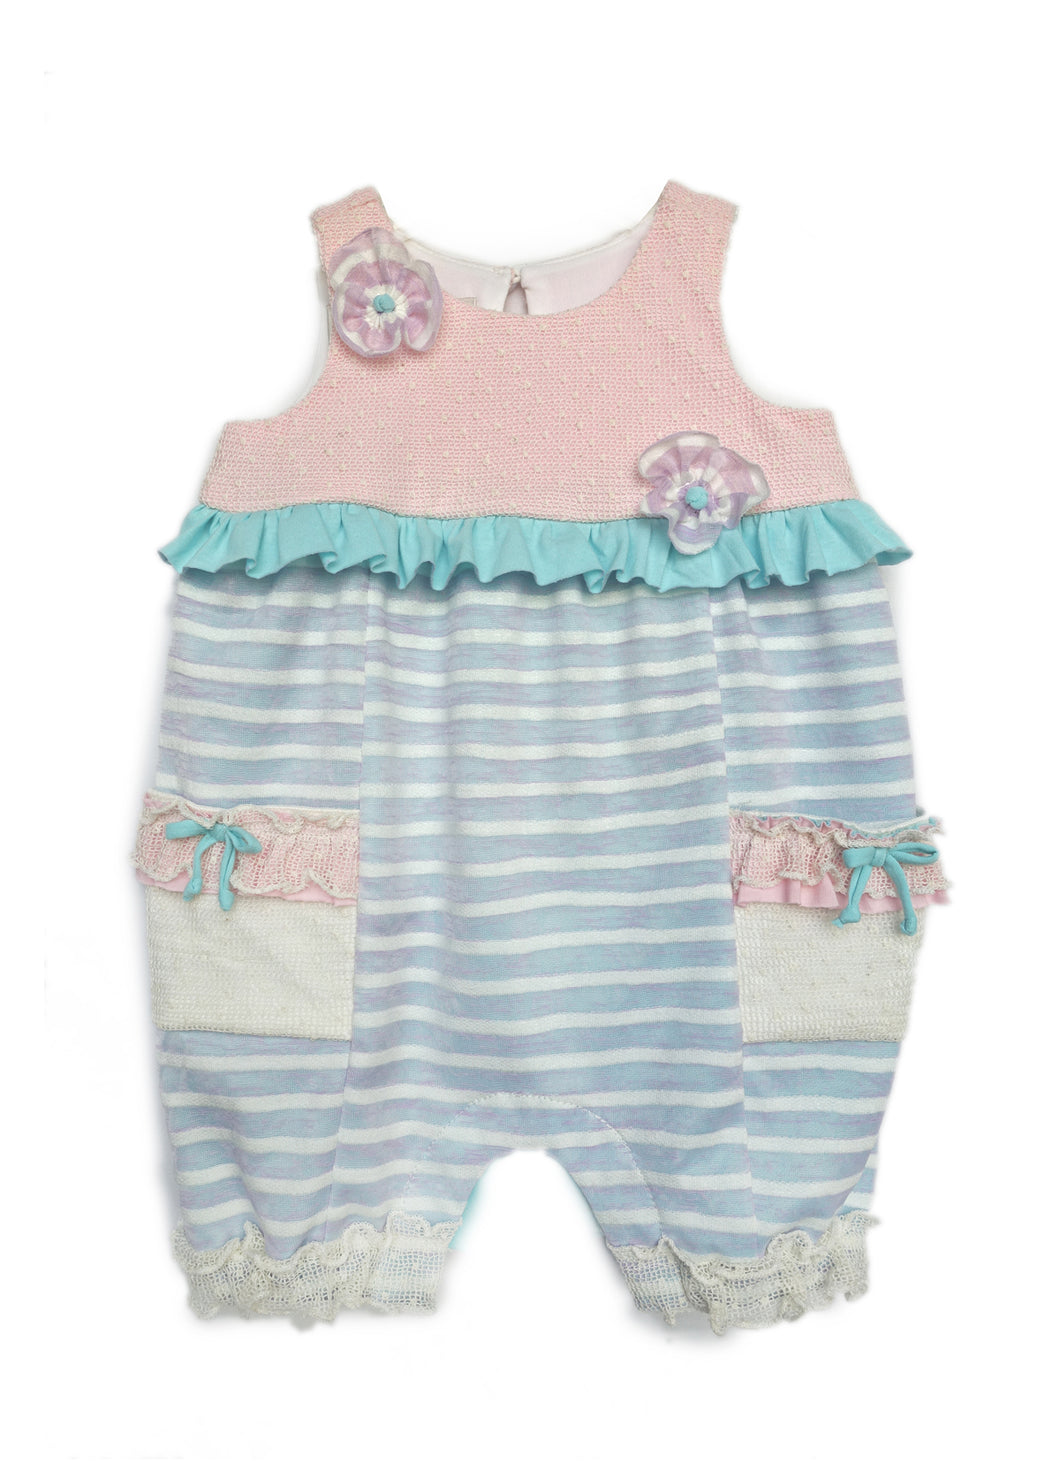 Isobella & Chloe Laffy Taffy Romper - Bloom Kids Collection - Isobella & Chloe